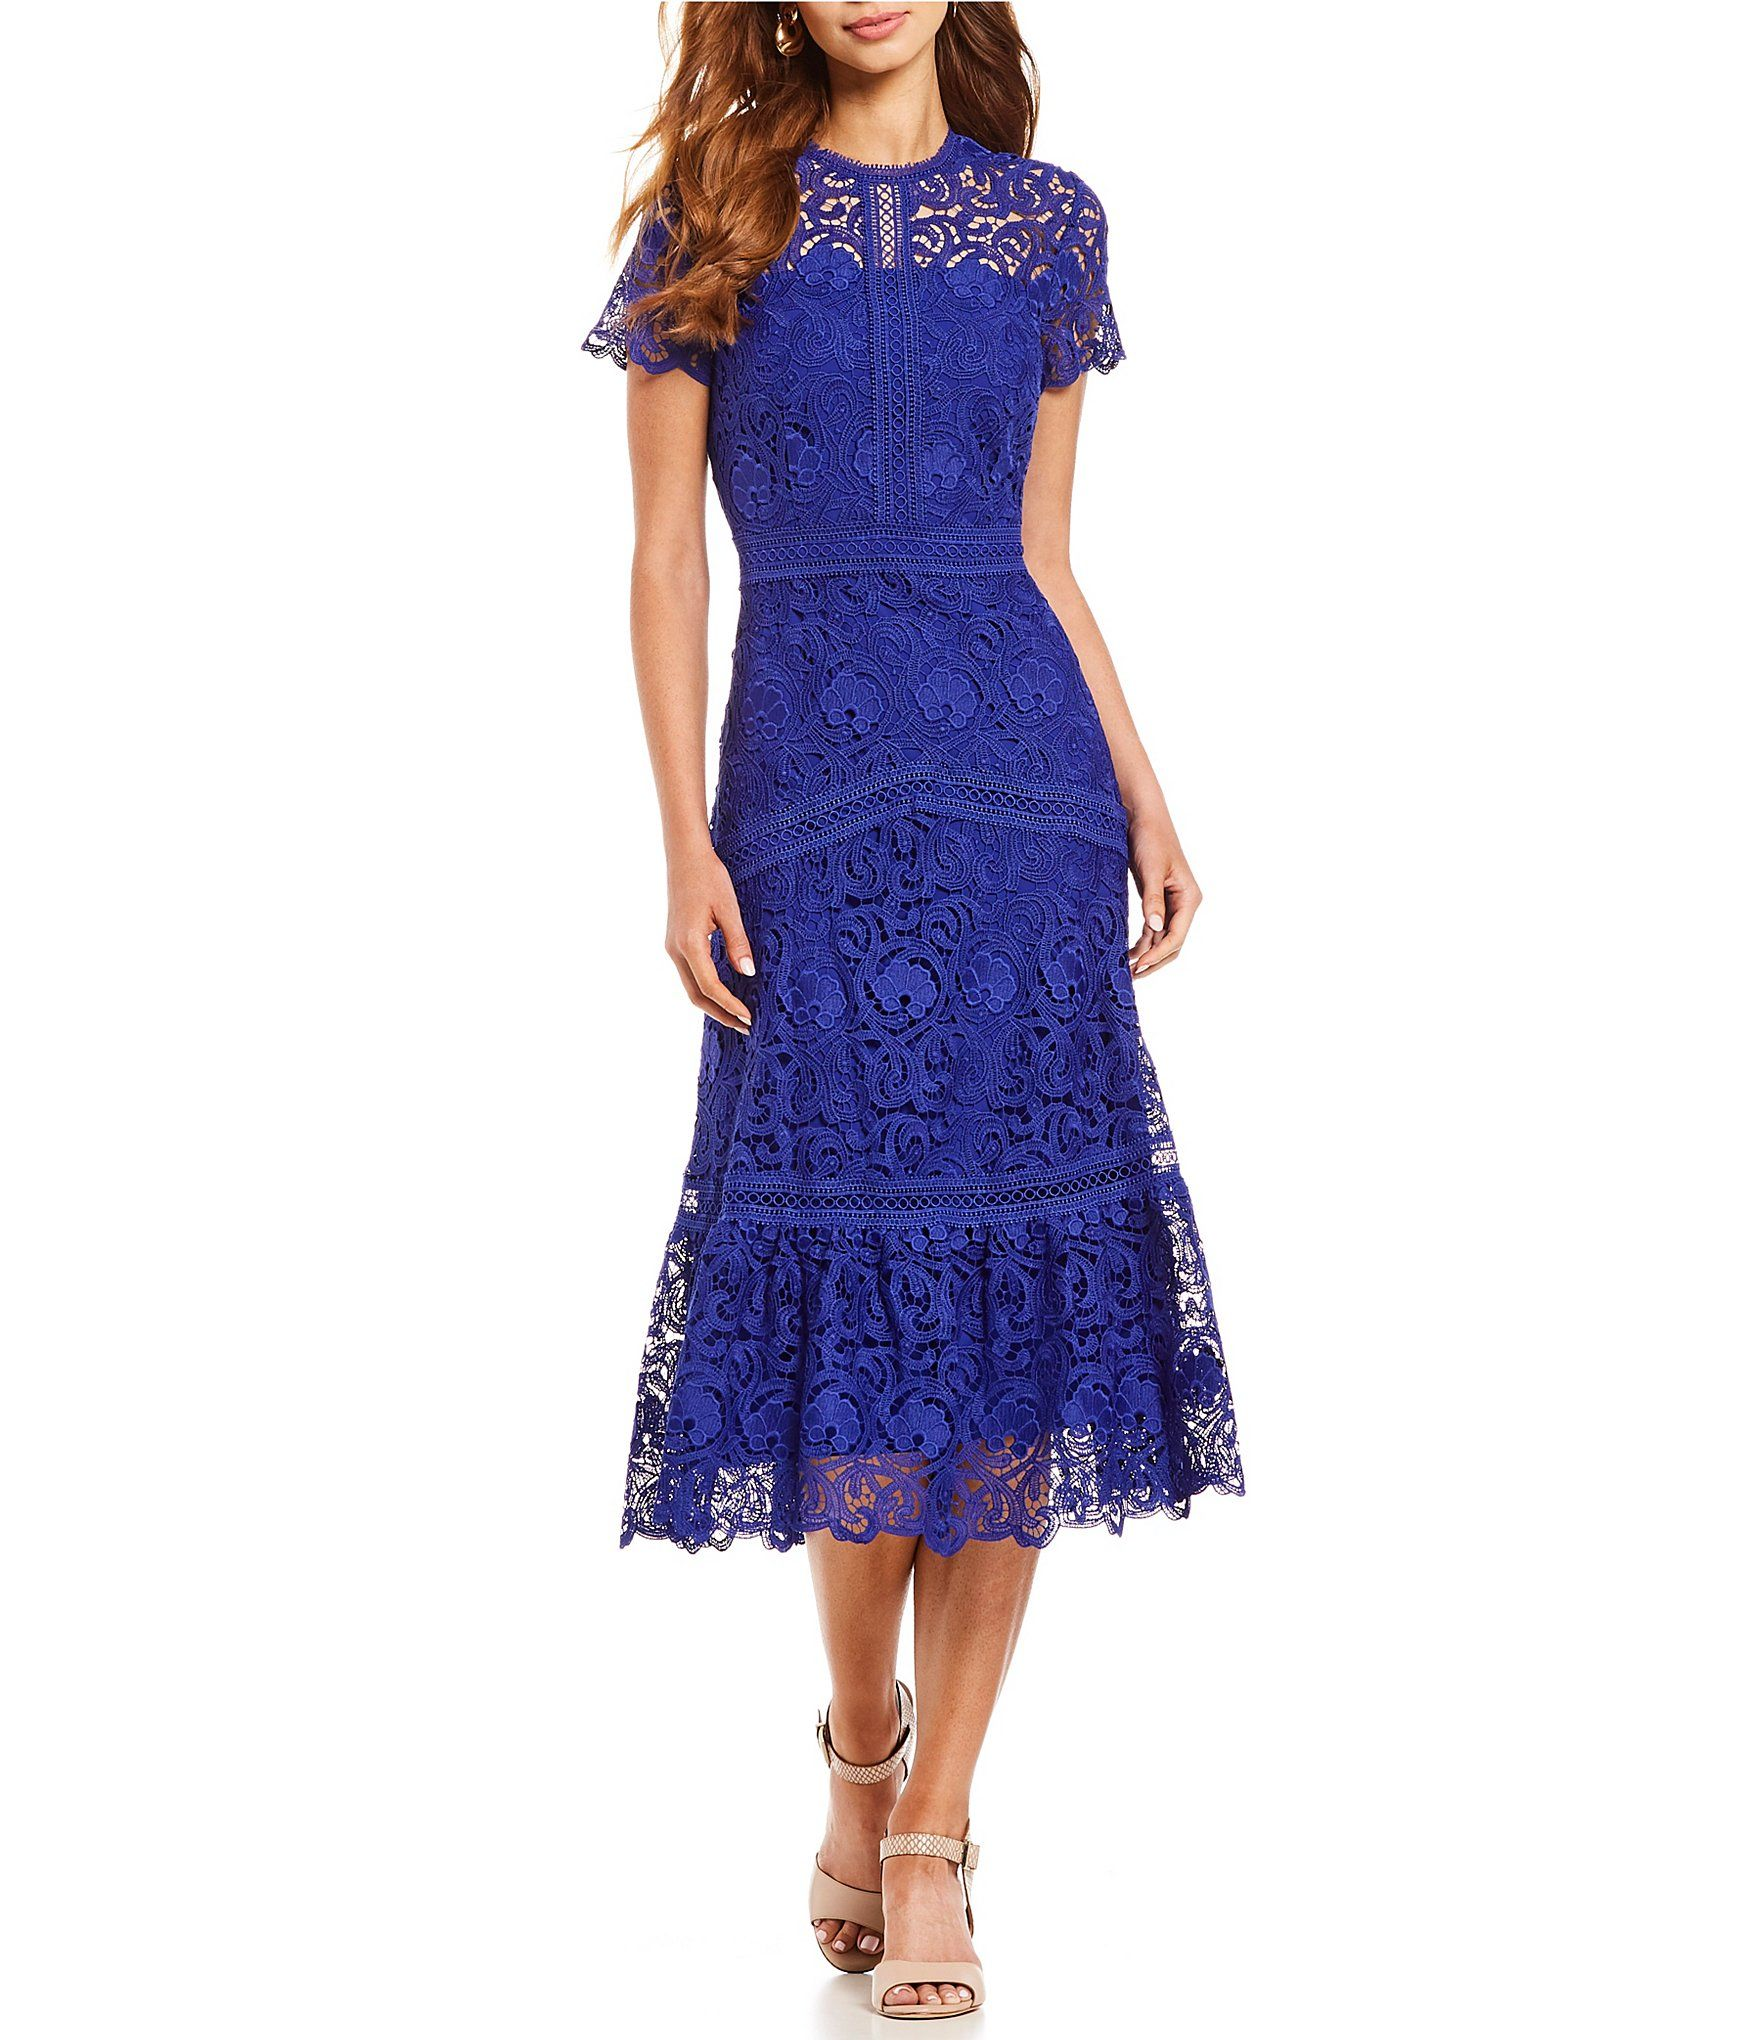 80aad1e7b Shop for Antonio Melani Park Lace Short Sleeve Midi Dress at Dillards.com.  Visit Dillards.com to find clothing, accessories, shoes, cosmetics & more.